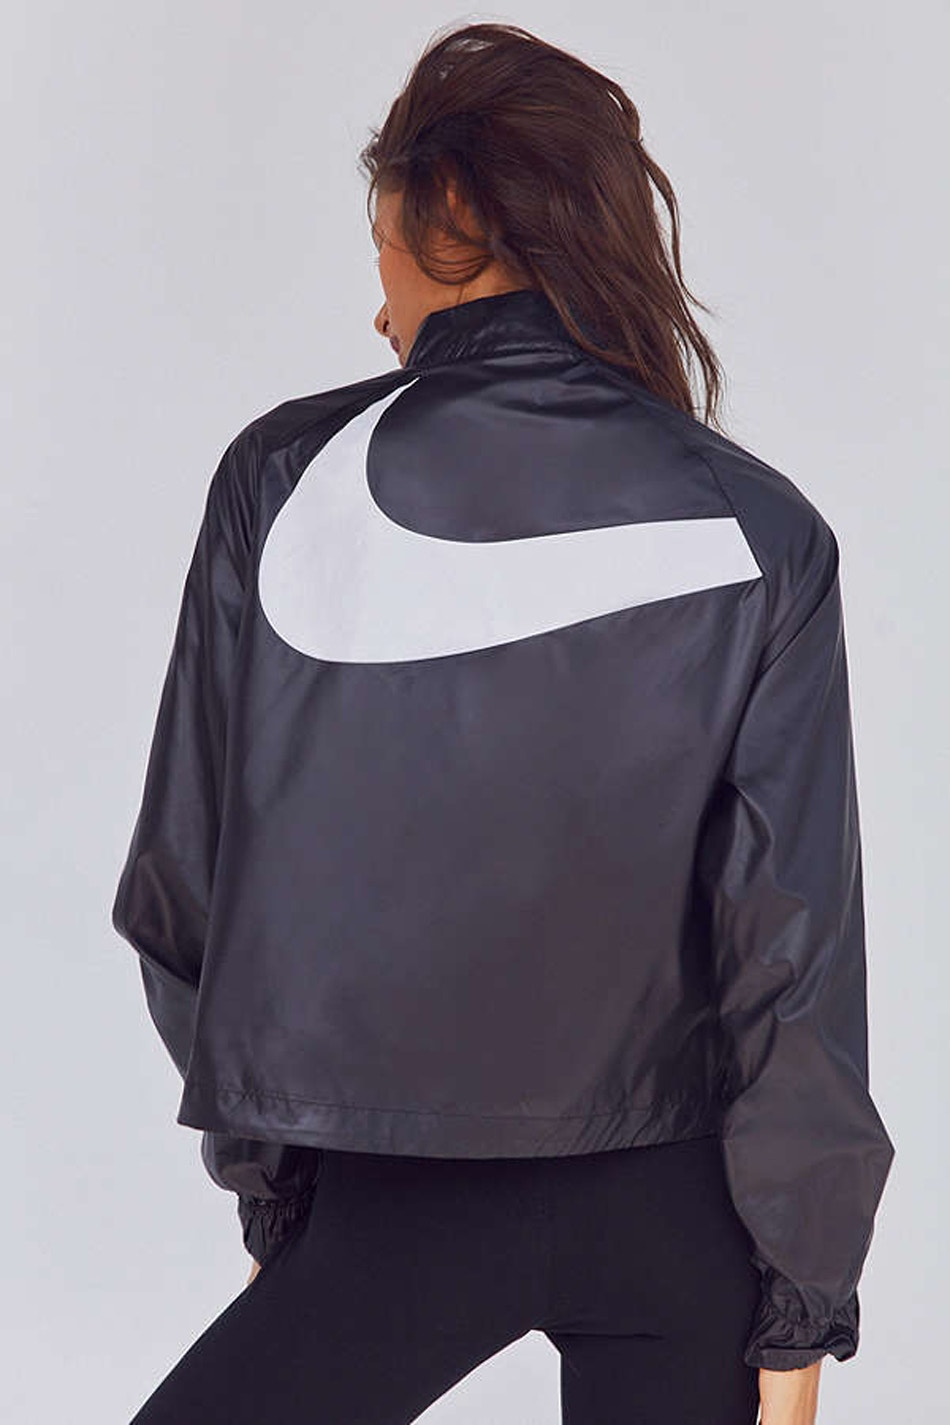 Nike coupe vents trends periodical